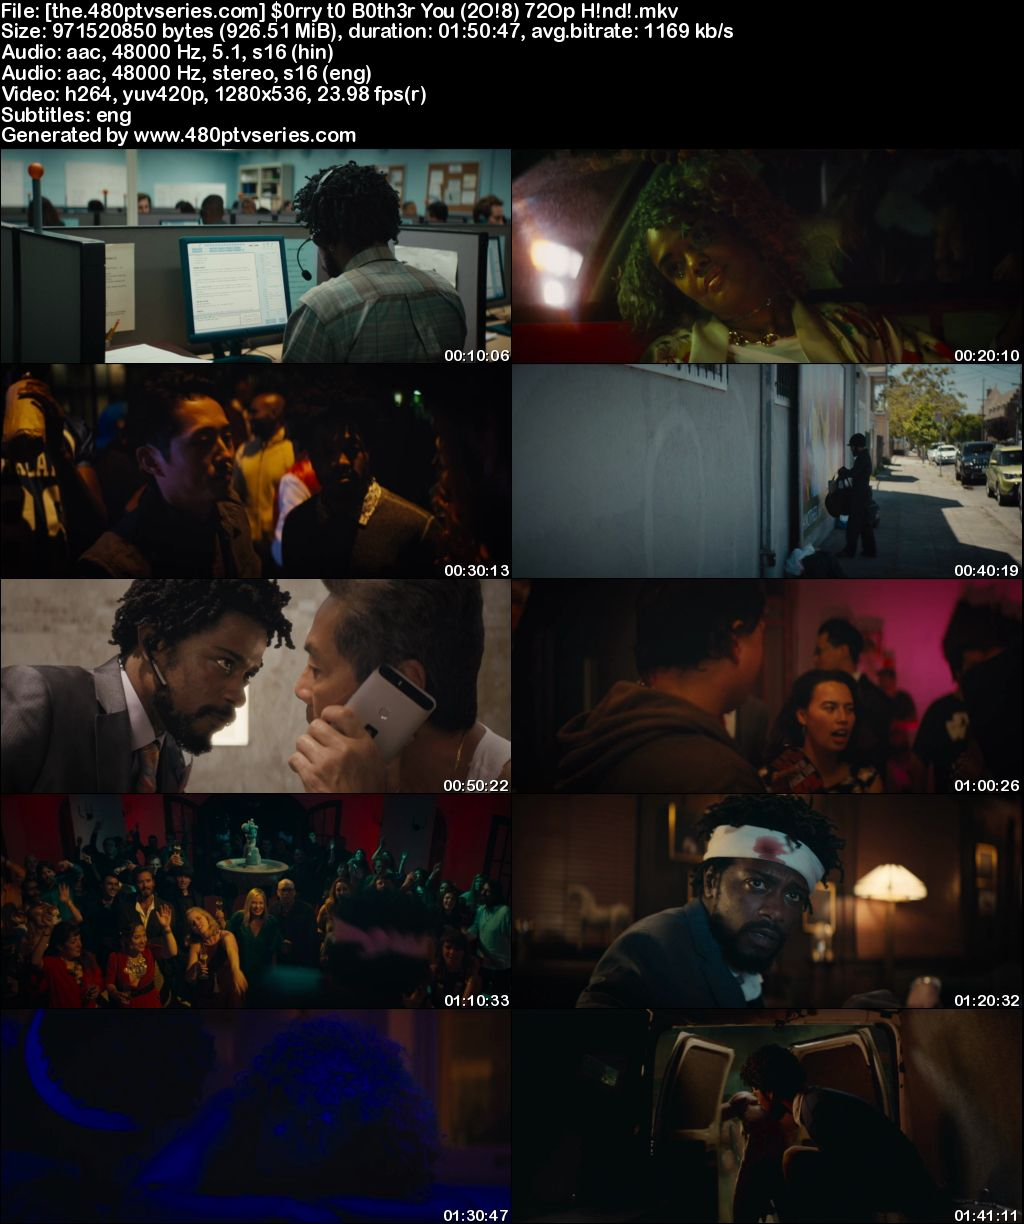 Watch Online Free Sorry to Bother You (2018) Full Hindi Dual Audio Movie Download 480p 720p Bluray